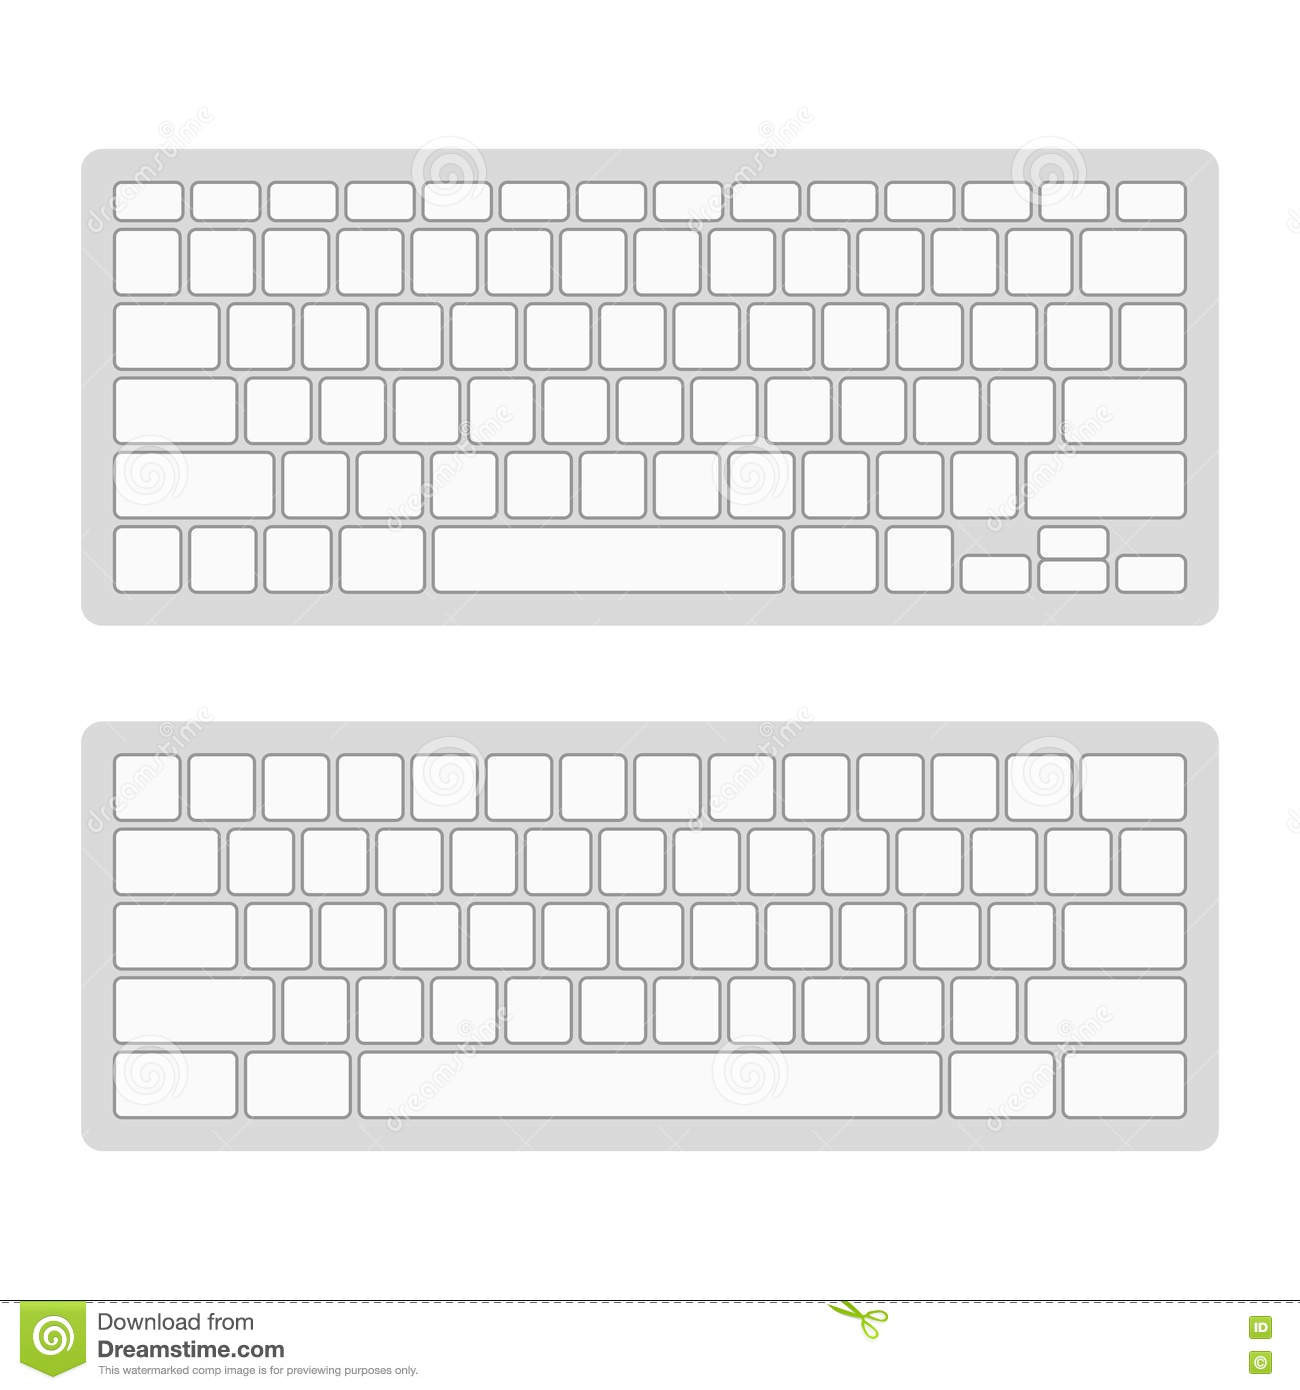 Free Printable Computer Keyboarding Worksheets Puter Keyboard Blank Template Set Vector Stock Vector